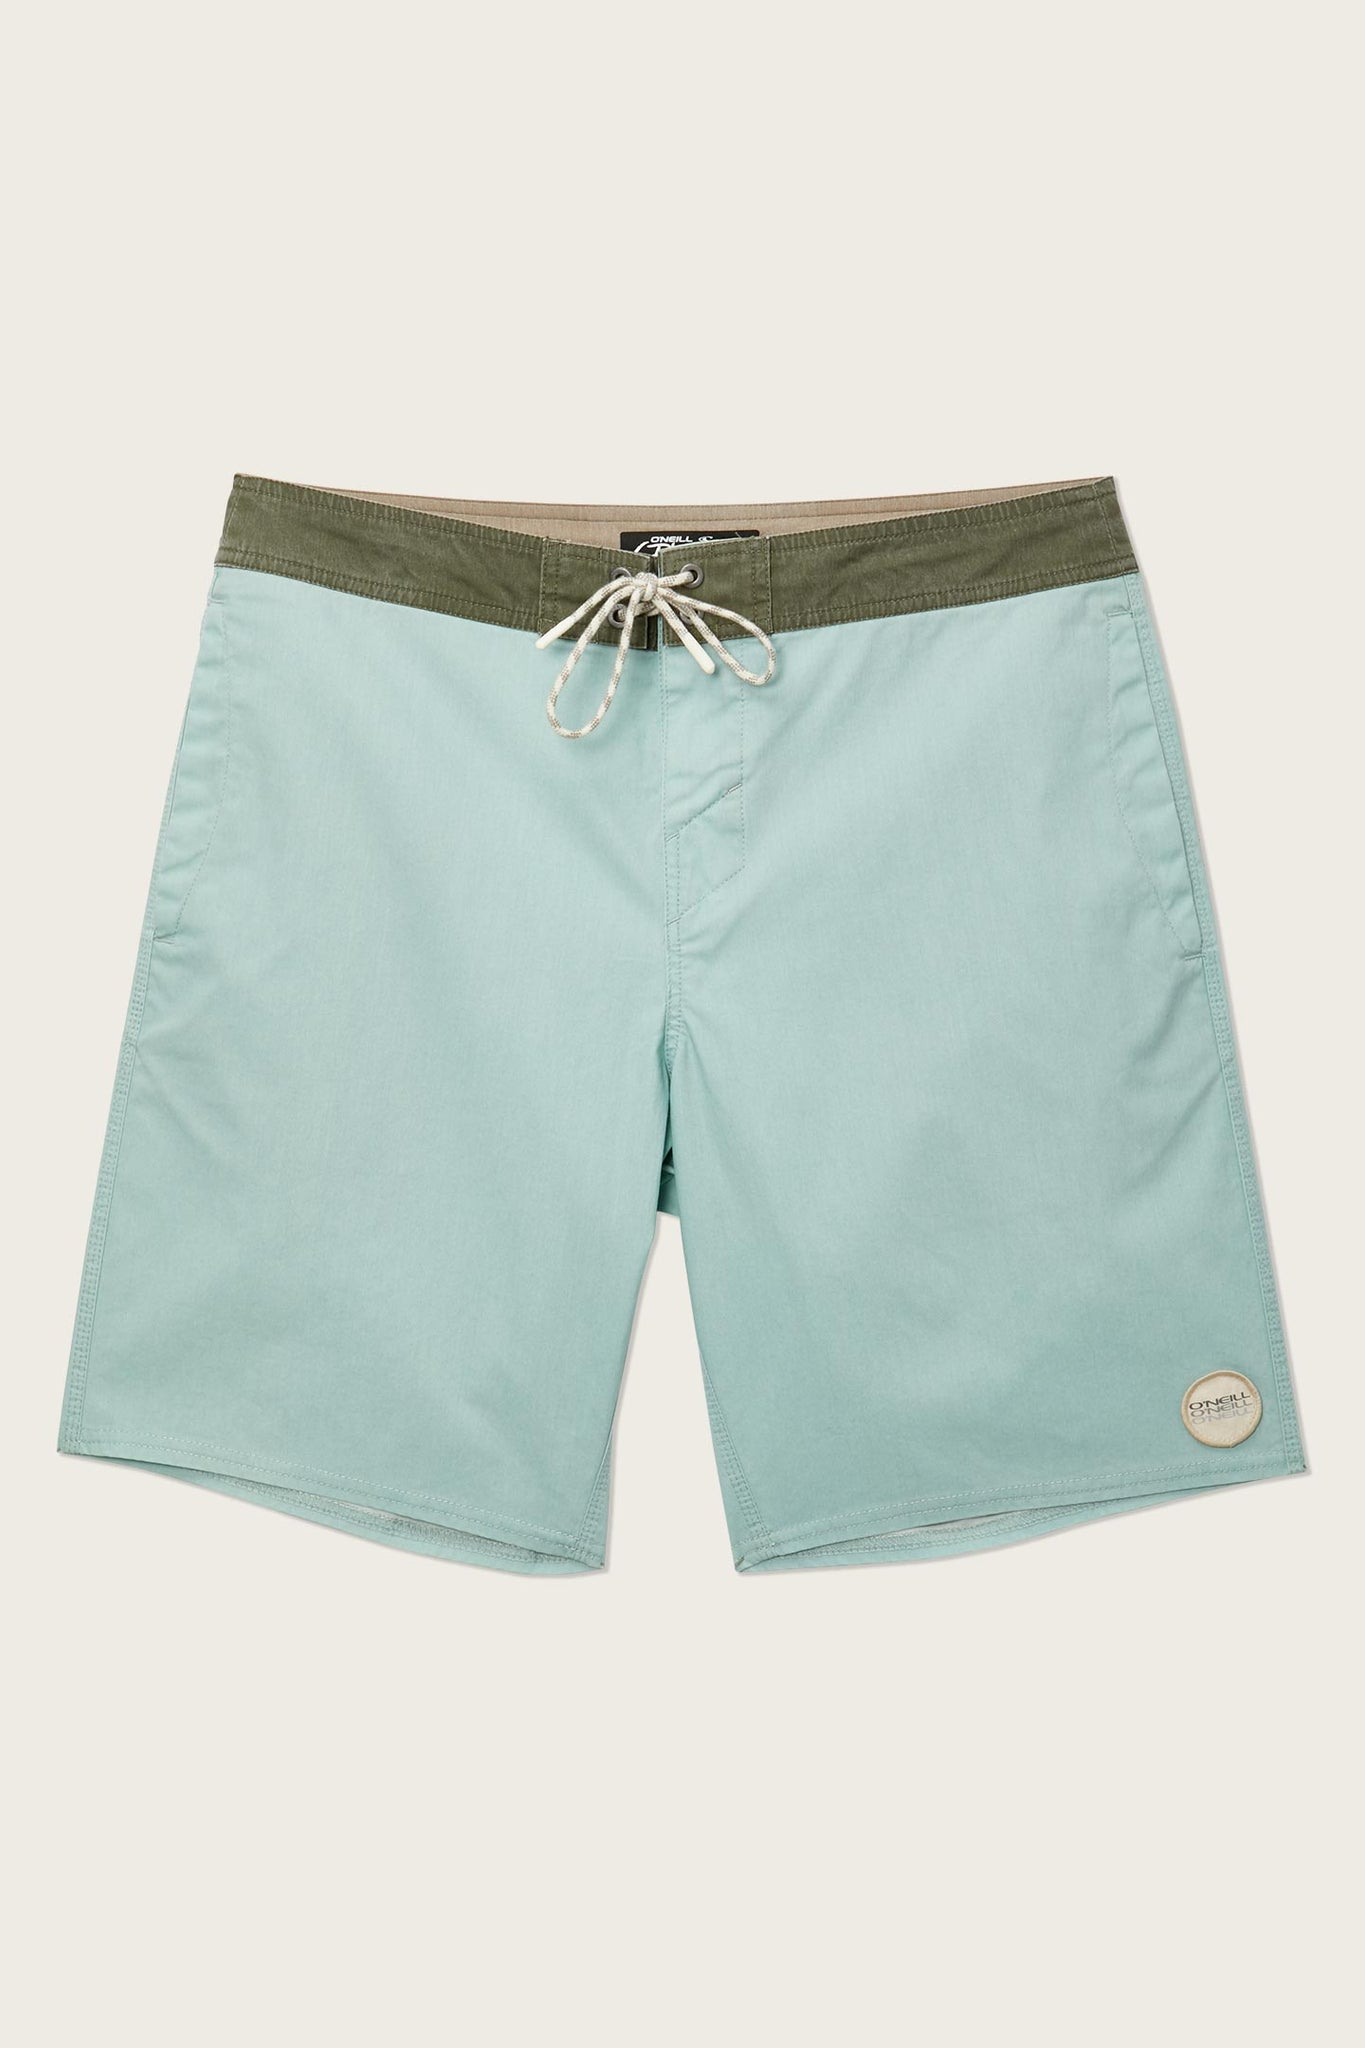 Faded Cruzer Boardshorts - Light Blue | O'Neill